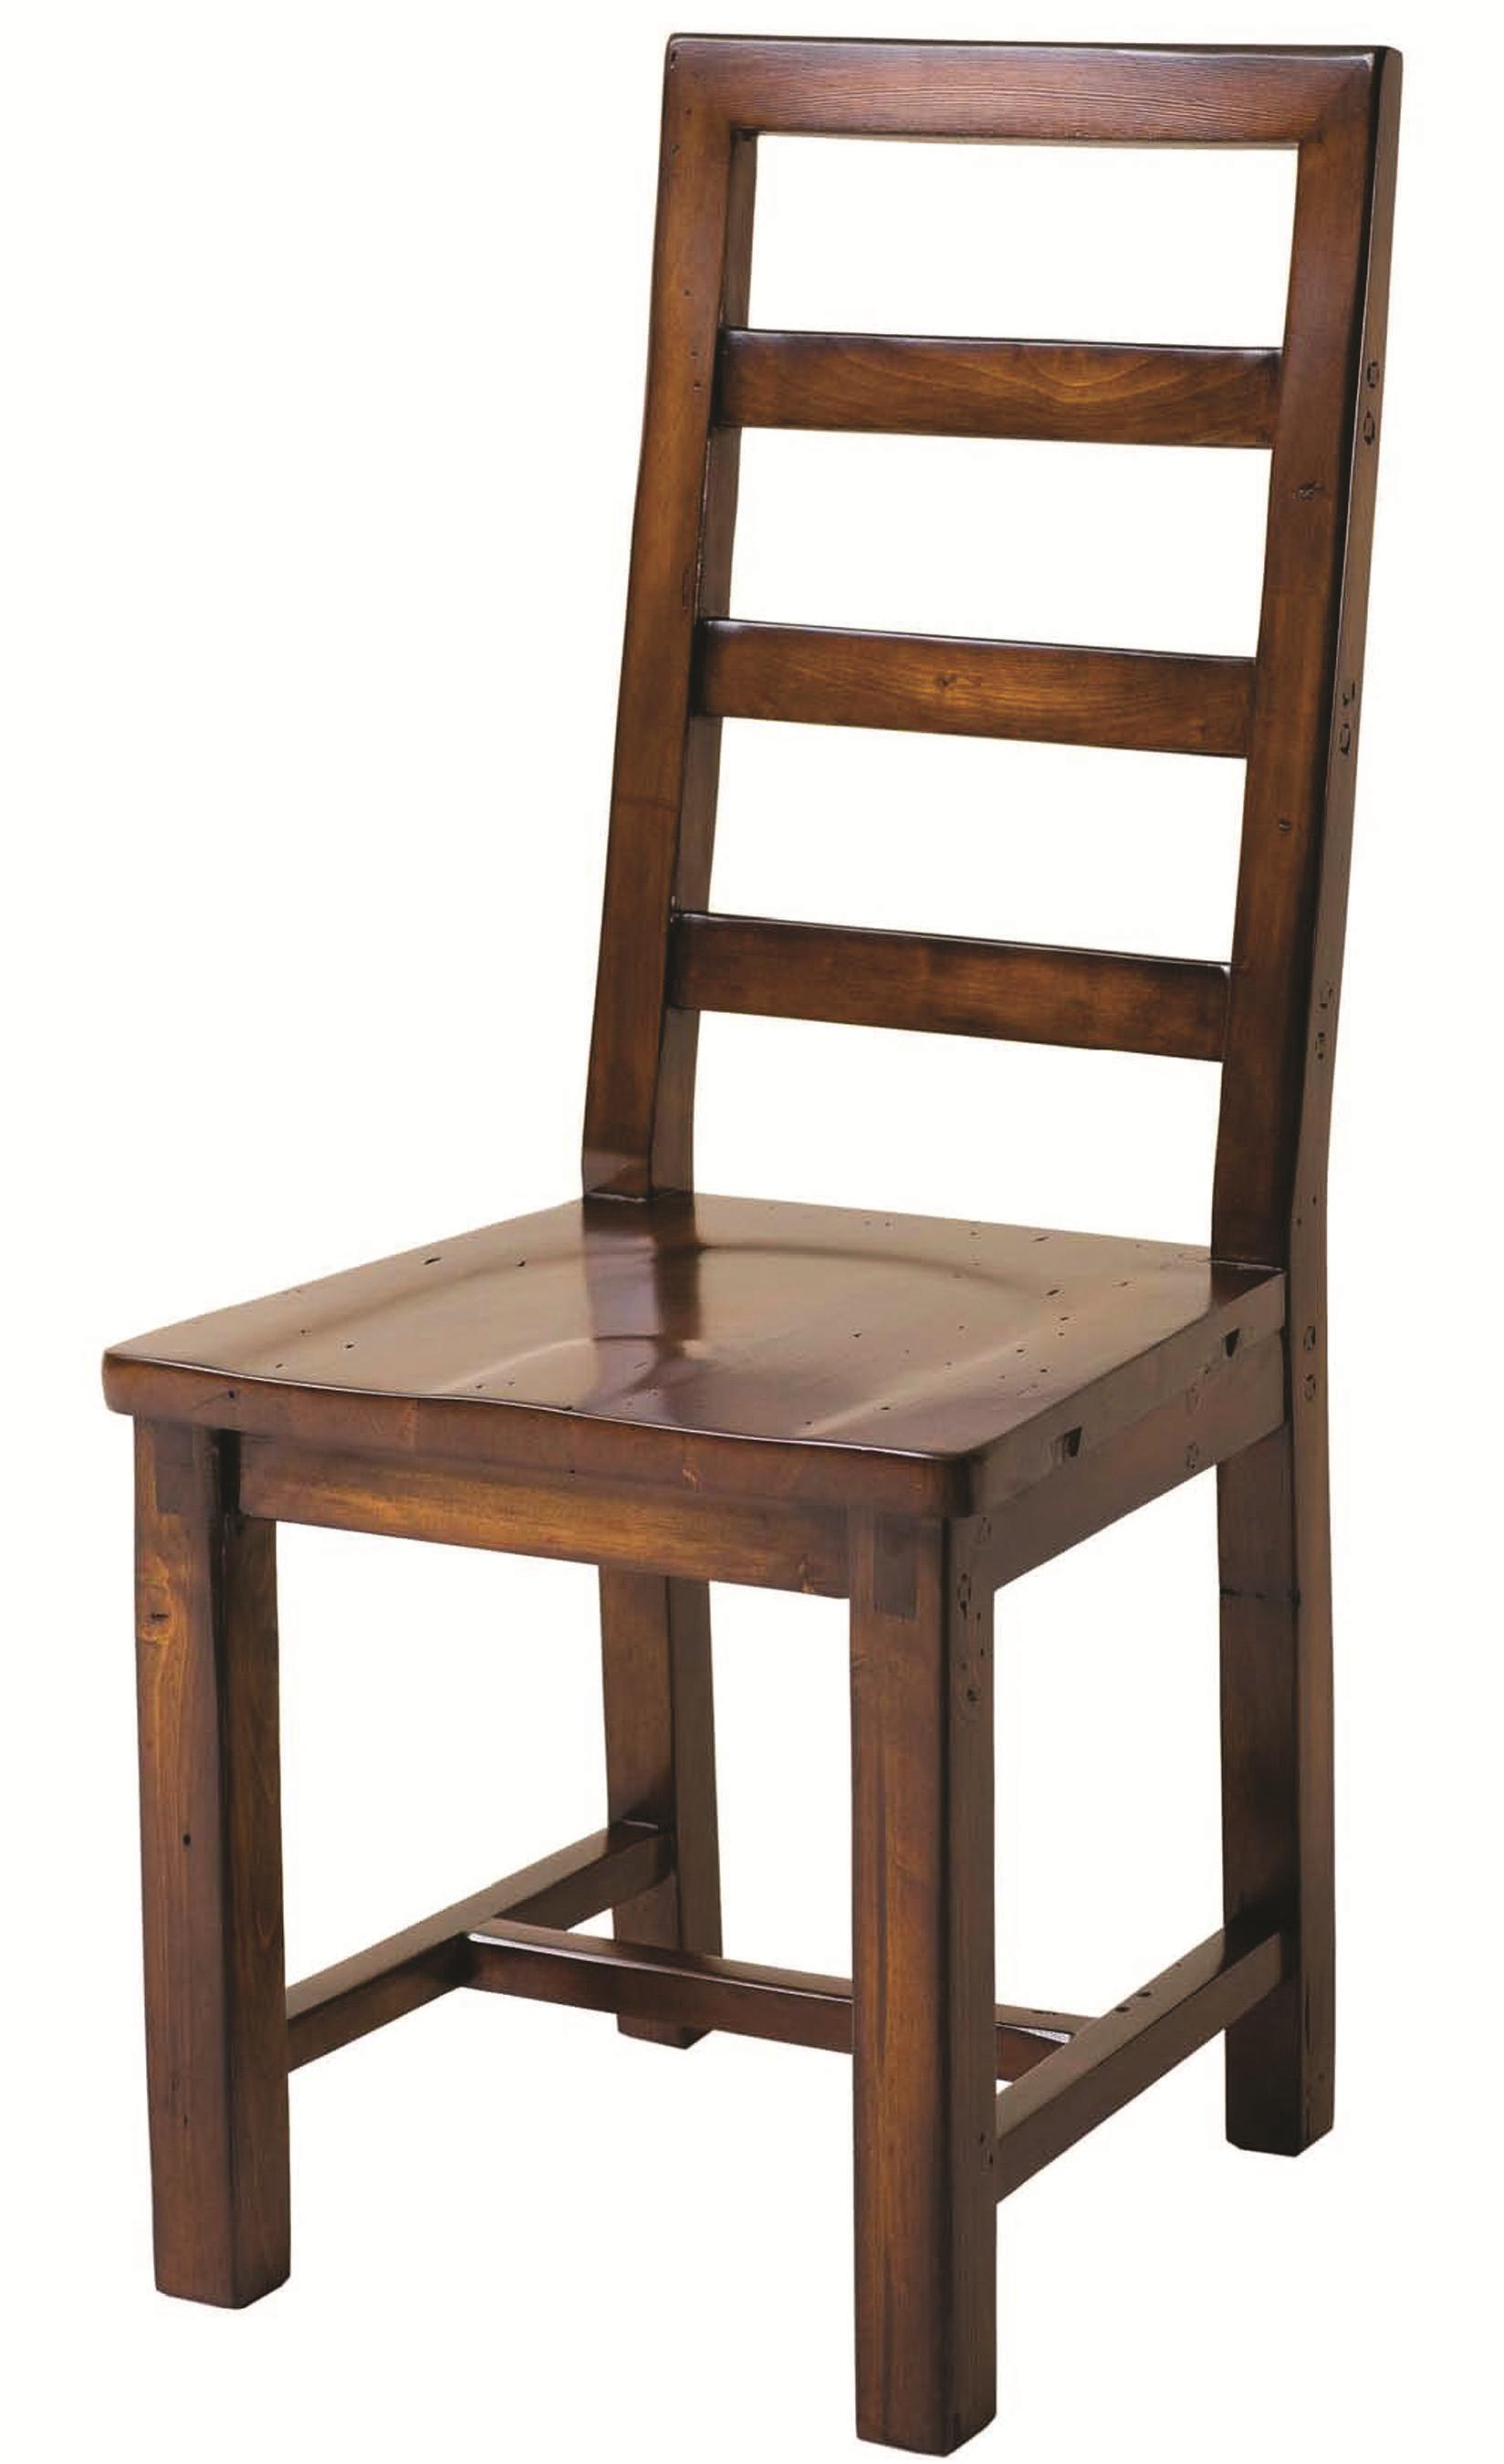 Four Hands Post and Rail Dining Chair - Item Number: VPRD-02T